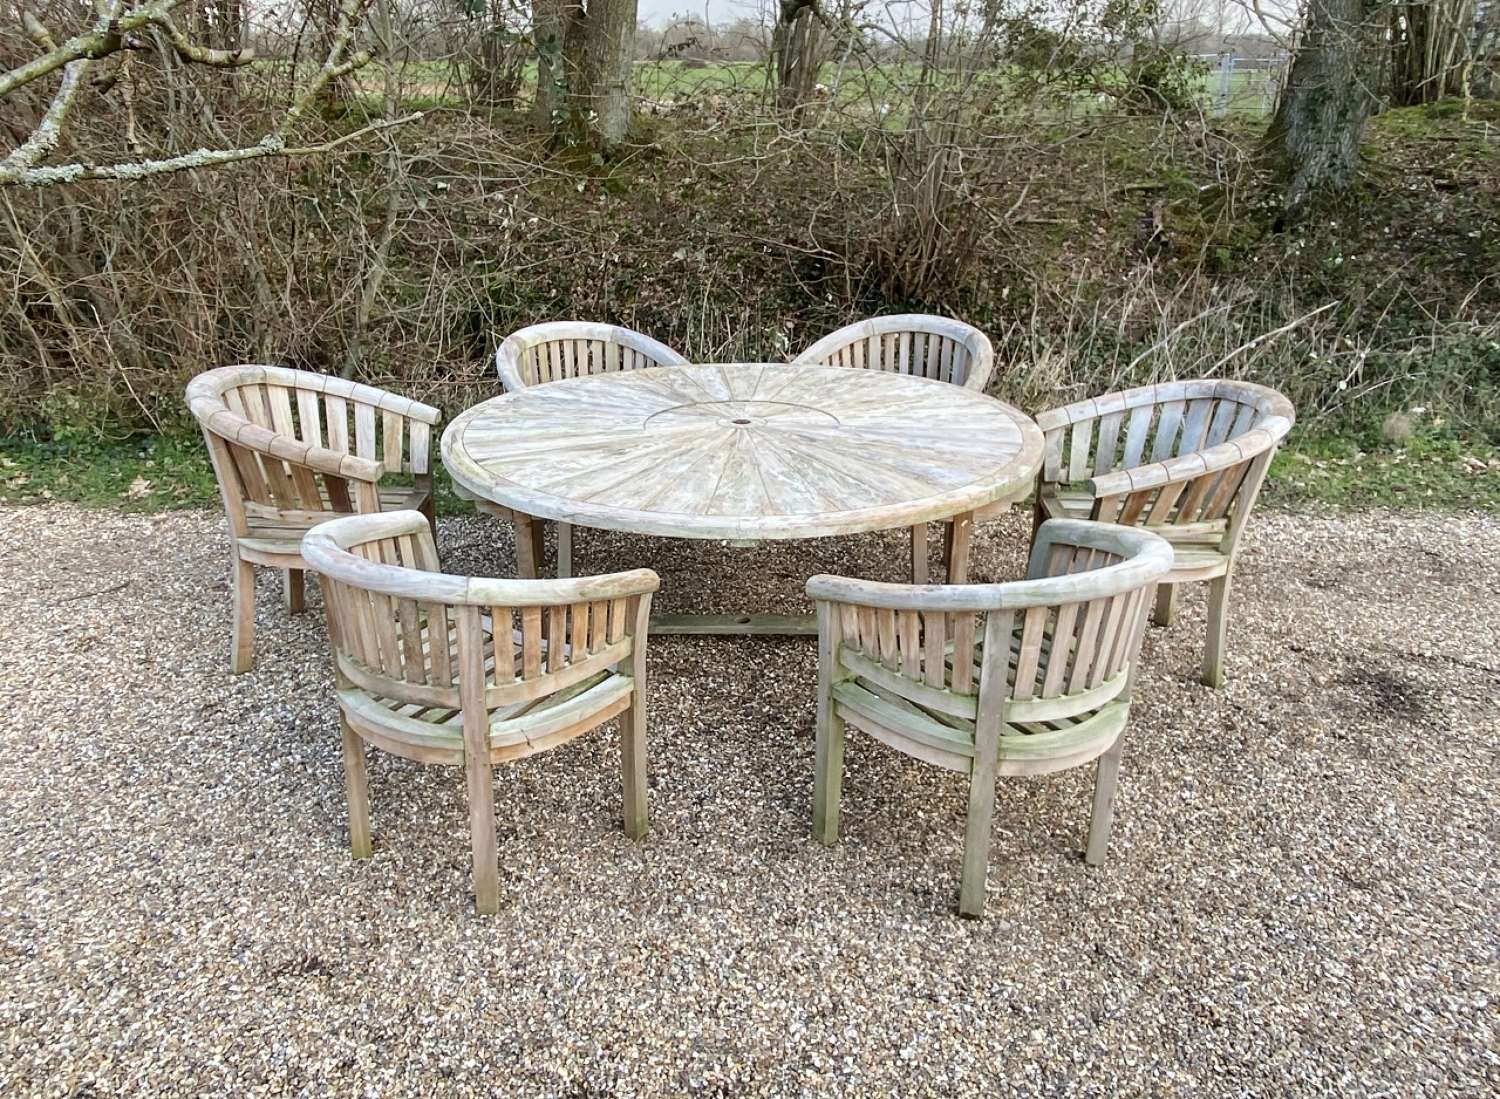 Large Round Table with Curved Seats